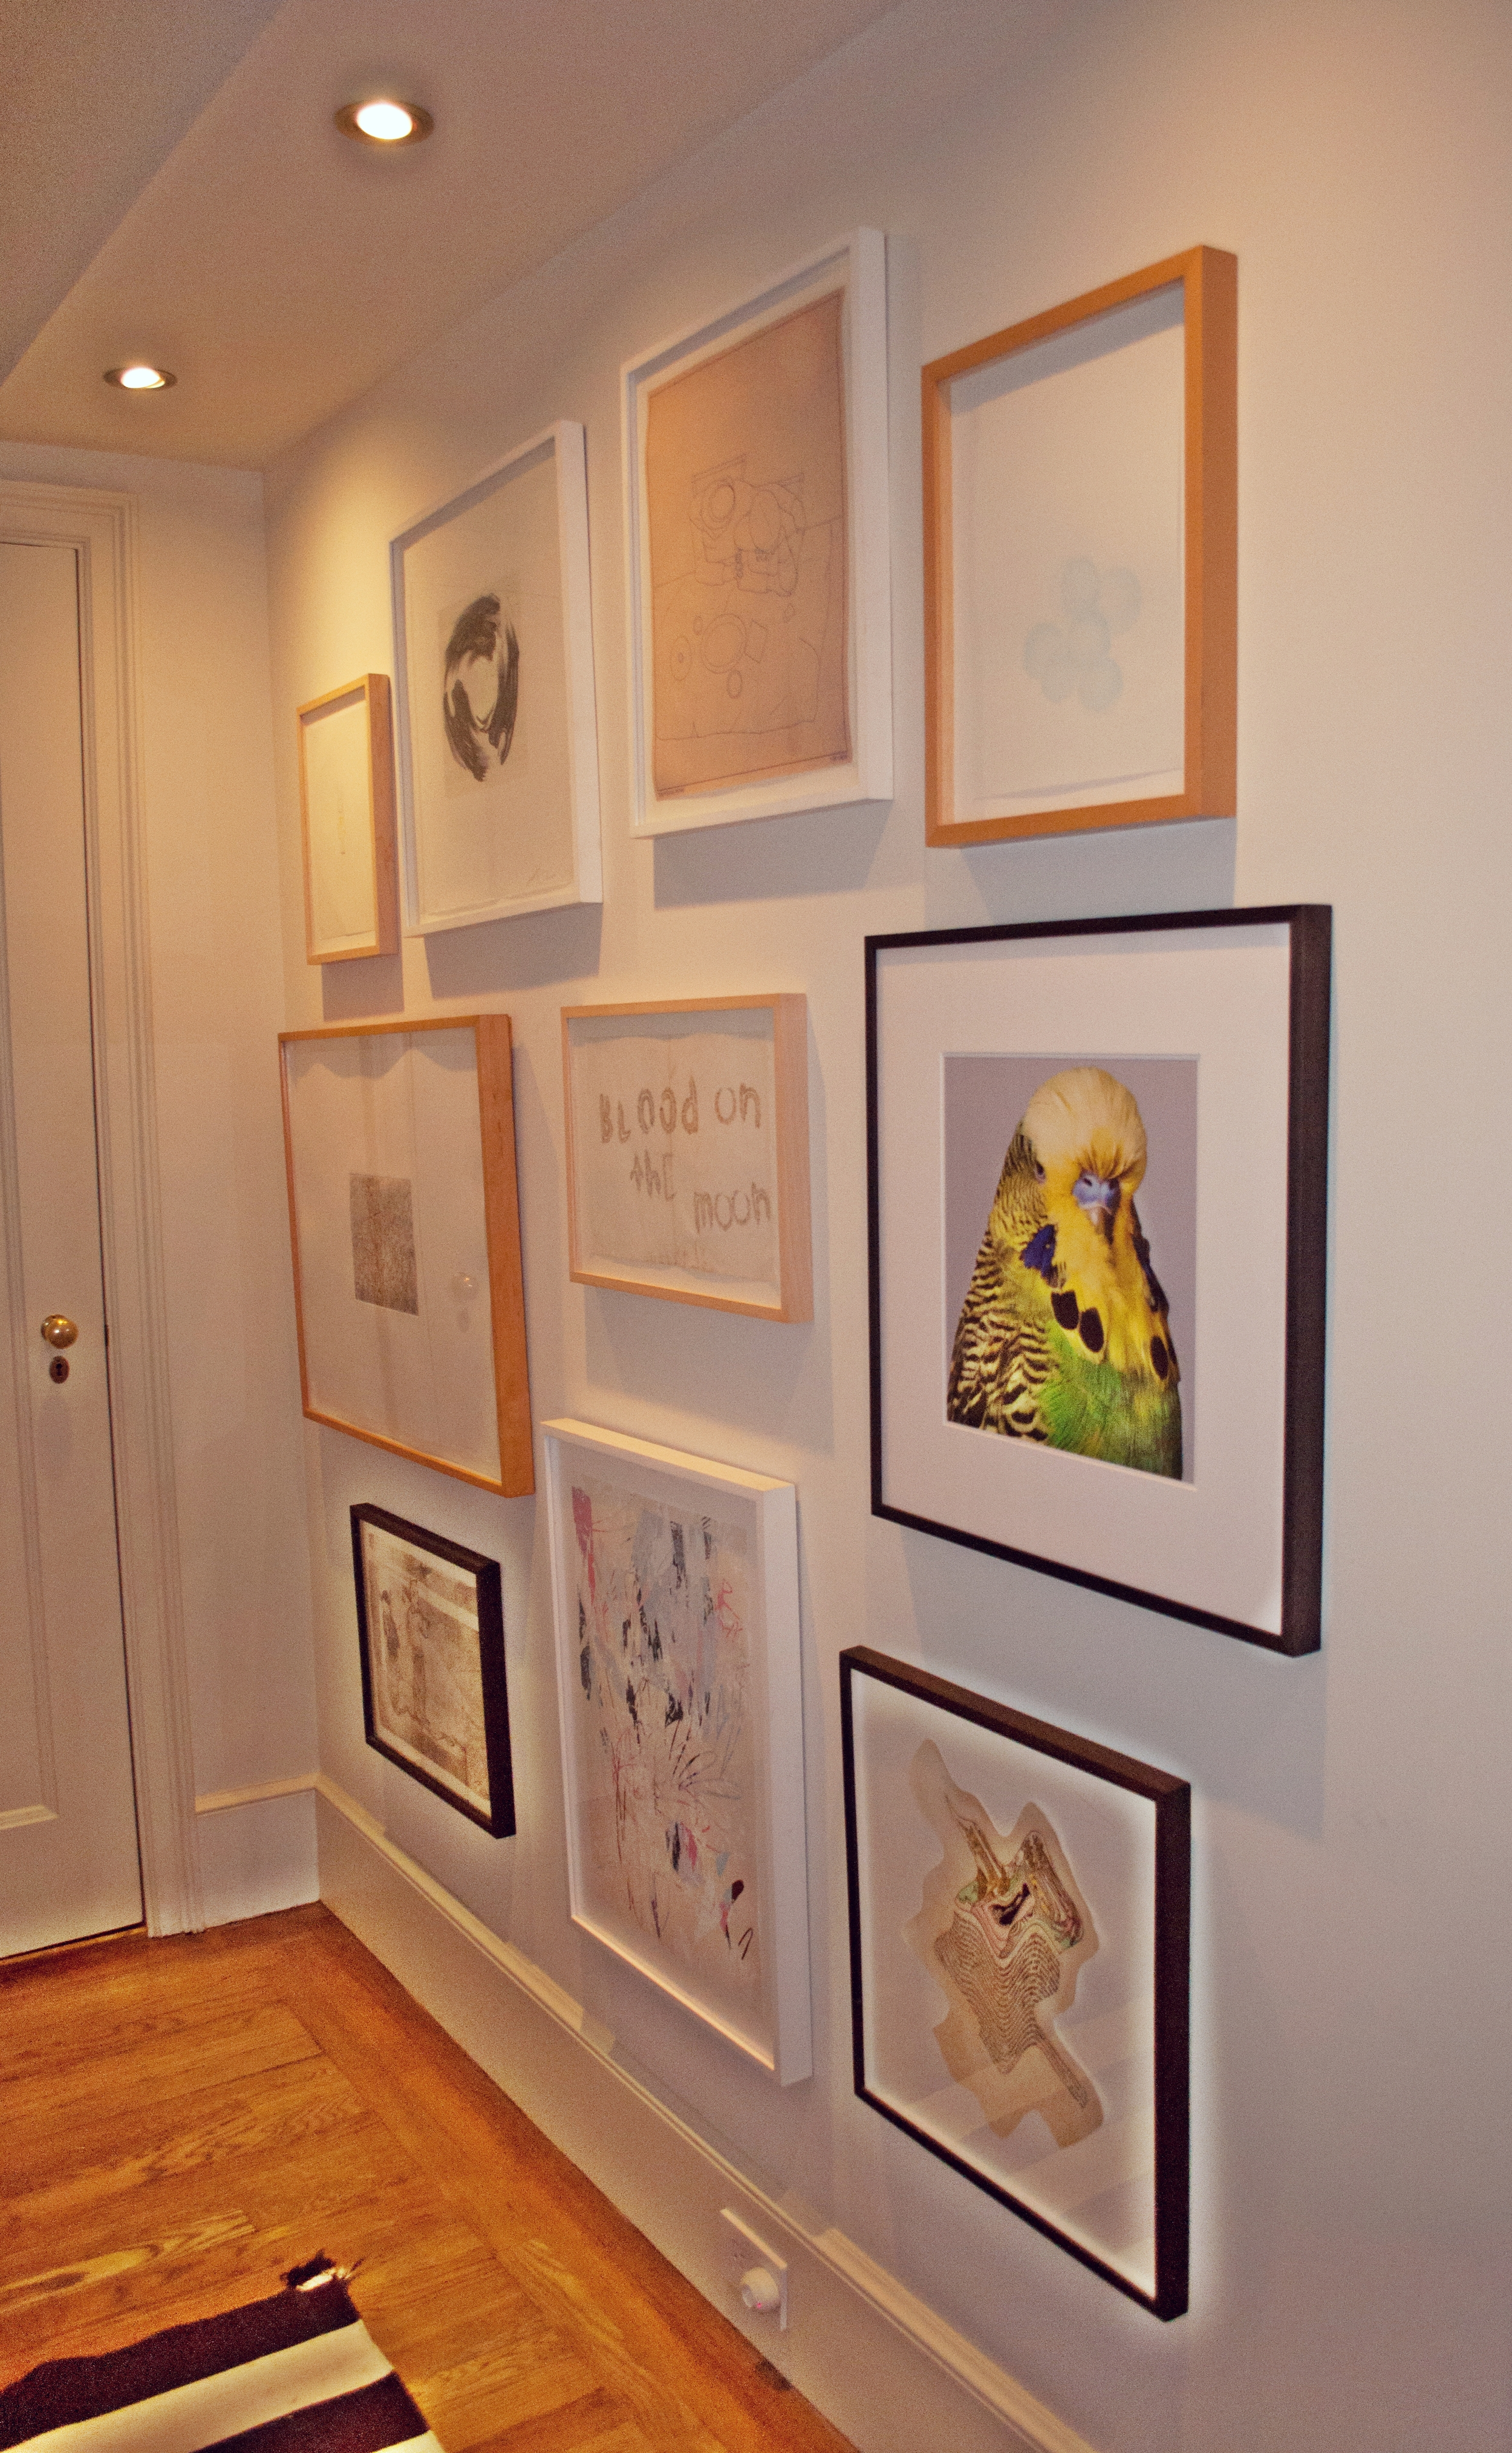 The entryway is filled with subtle works on paper hung in a gallery-style.